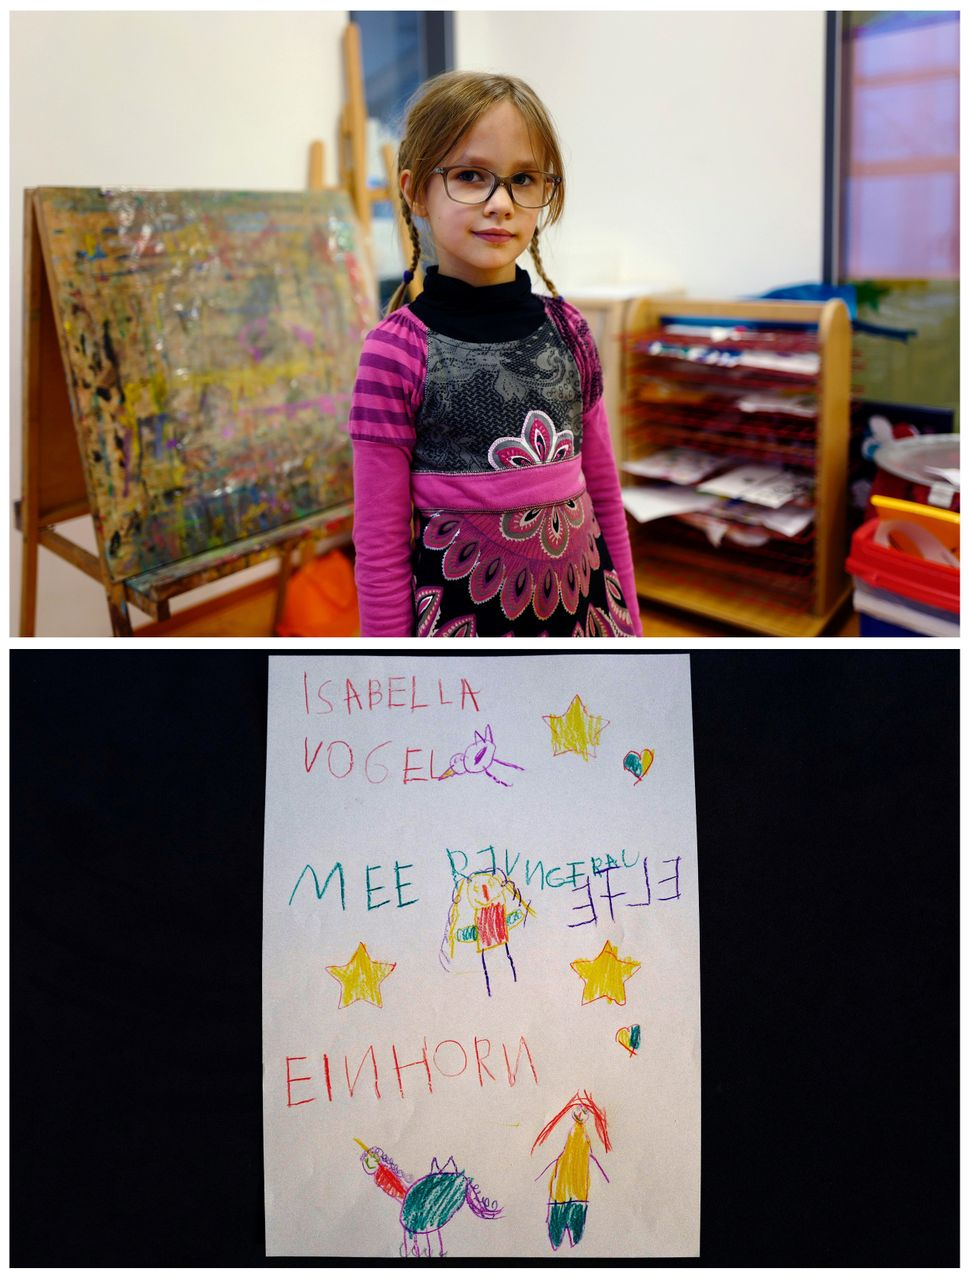 <strong>Isabella Grunewald, 5, from Hanau, Germany:</strong> Isabella hopes for a living bird as a pet and also a mermai